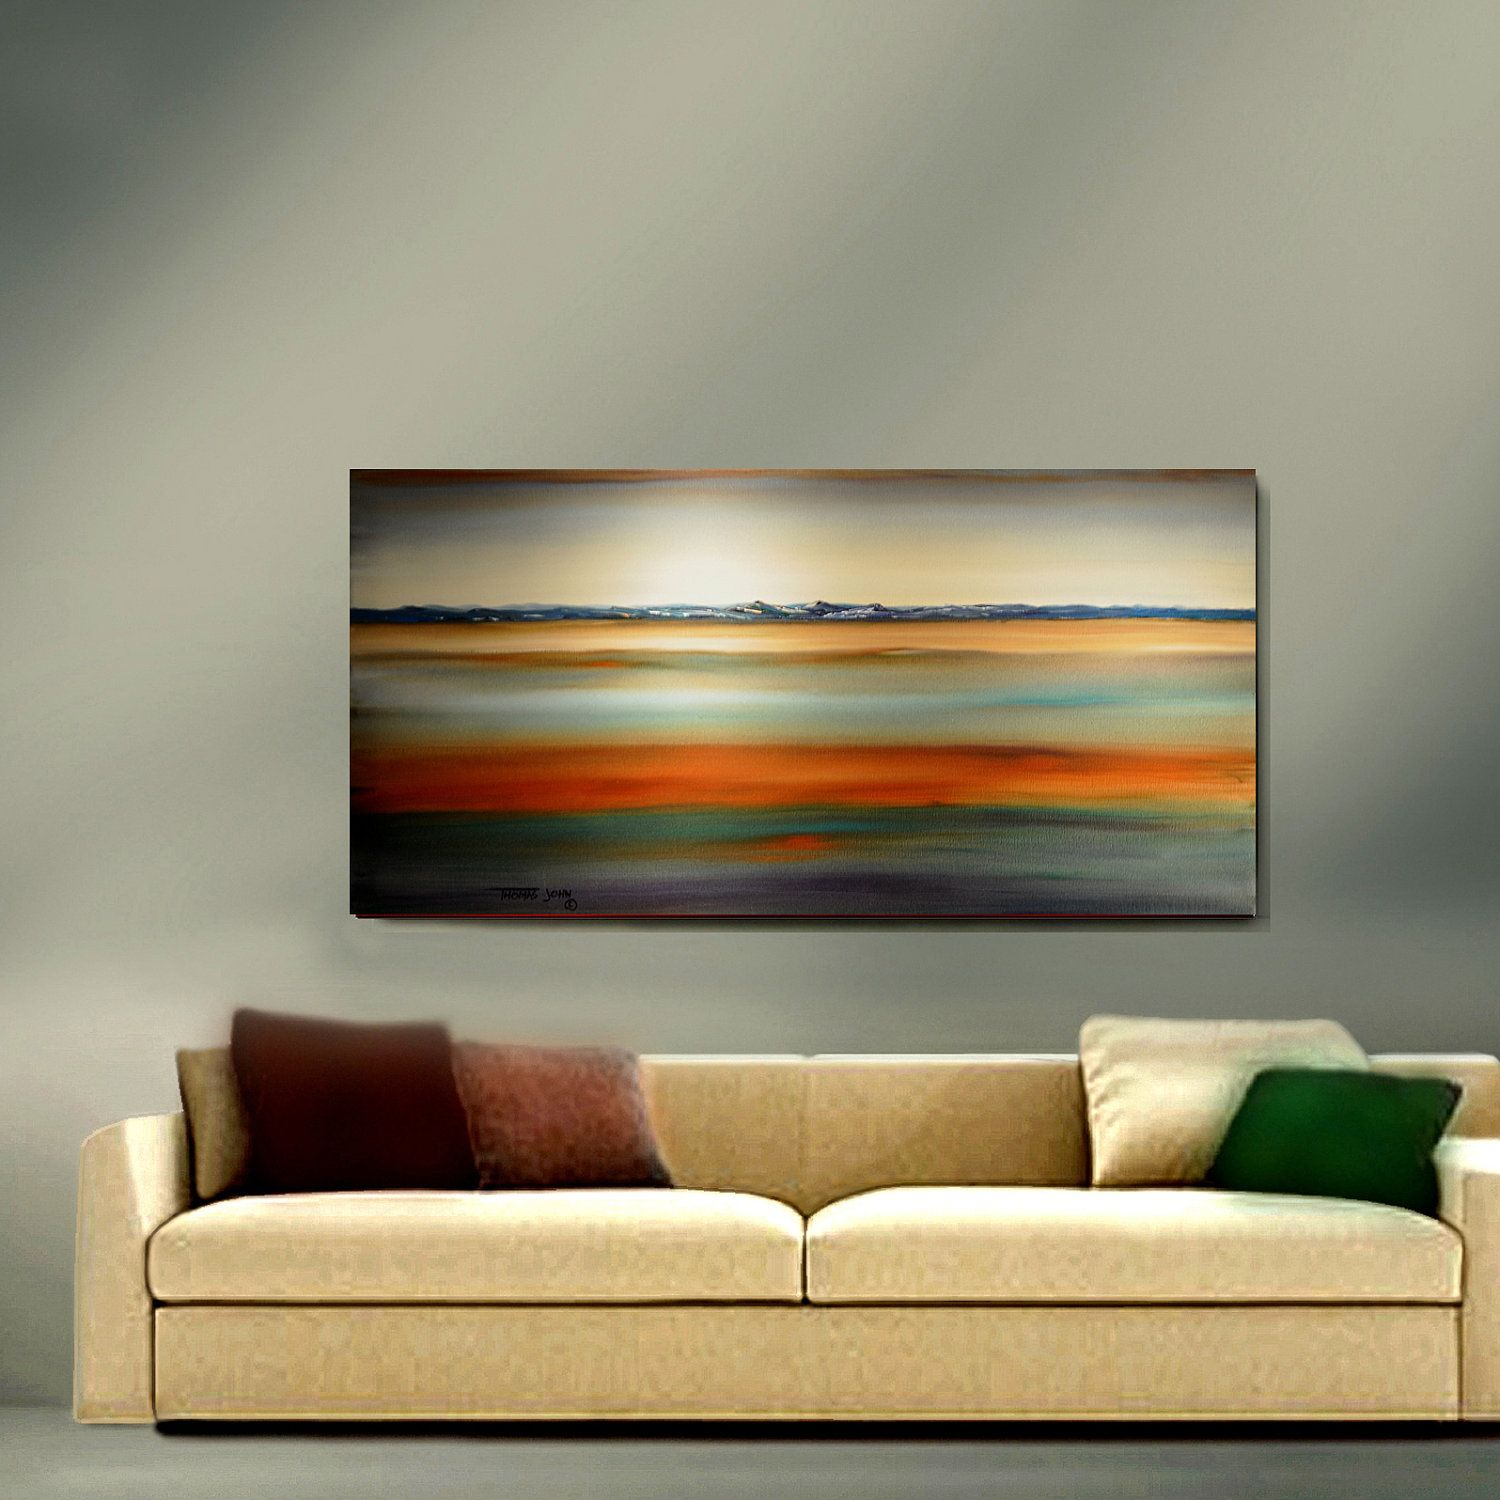 ORIGINAL ABSTRACT Painting Large 24X48 Sunset Landscape No Frame ...